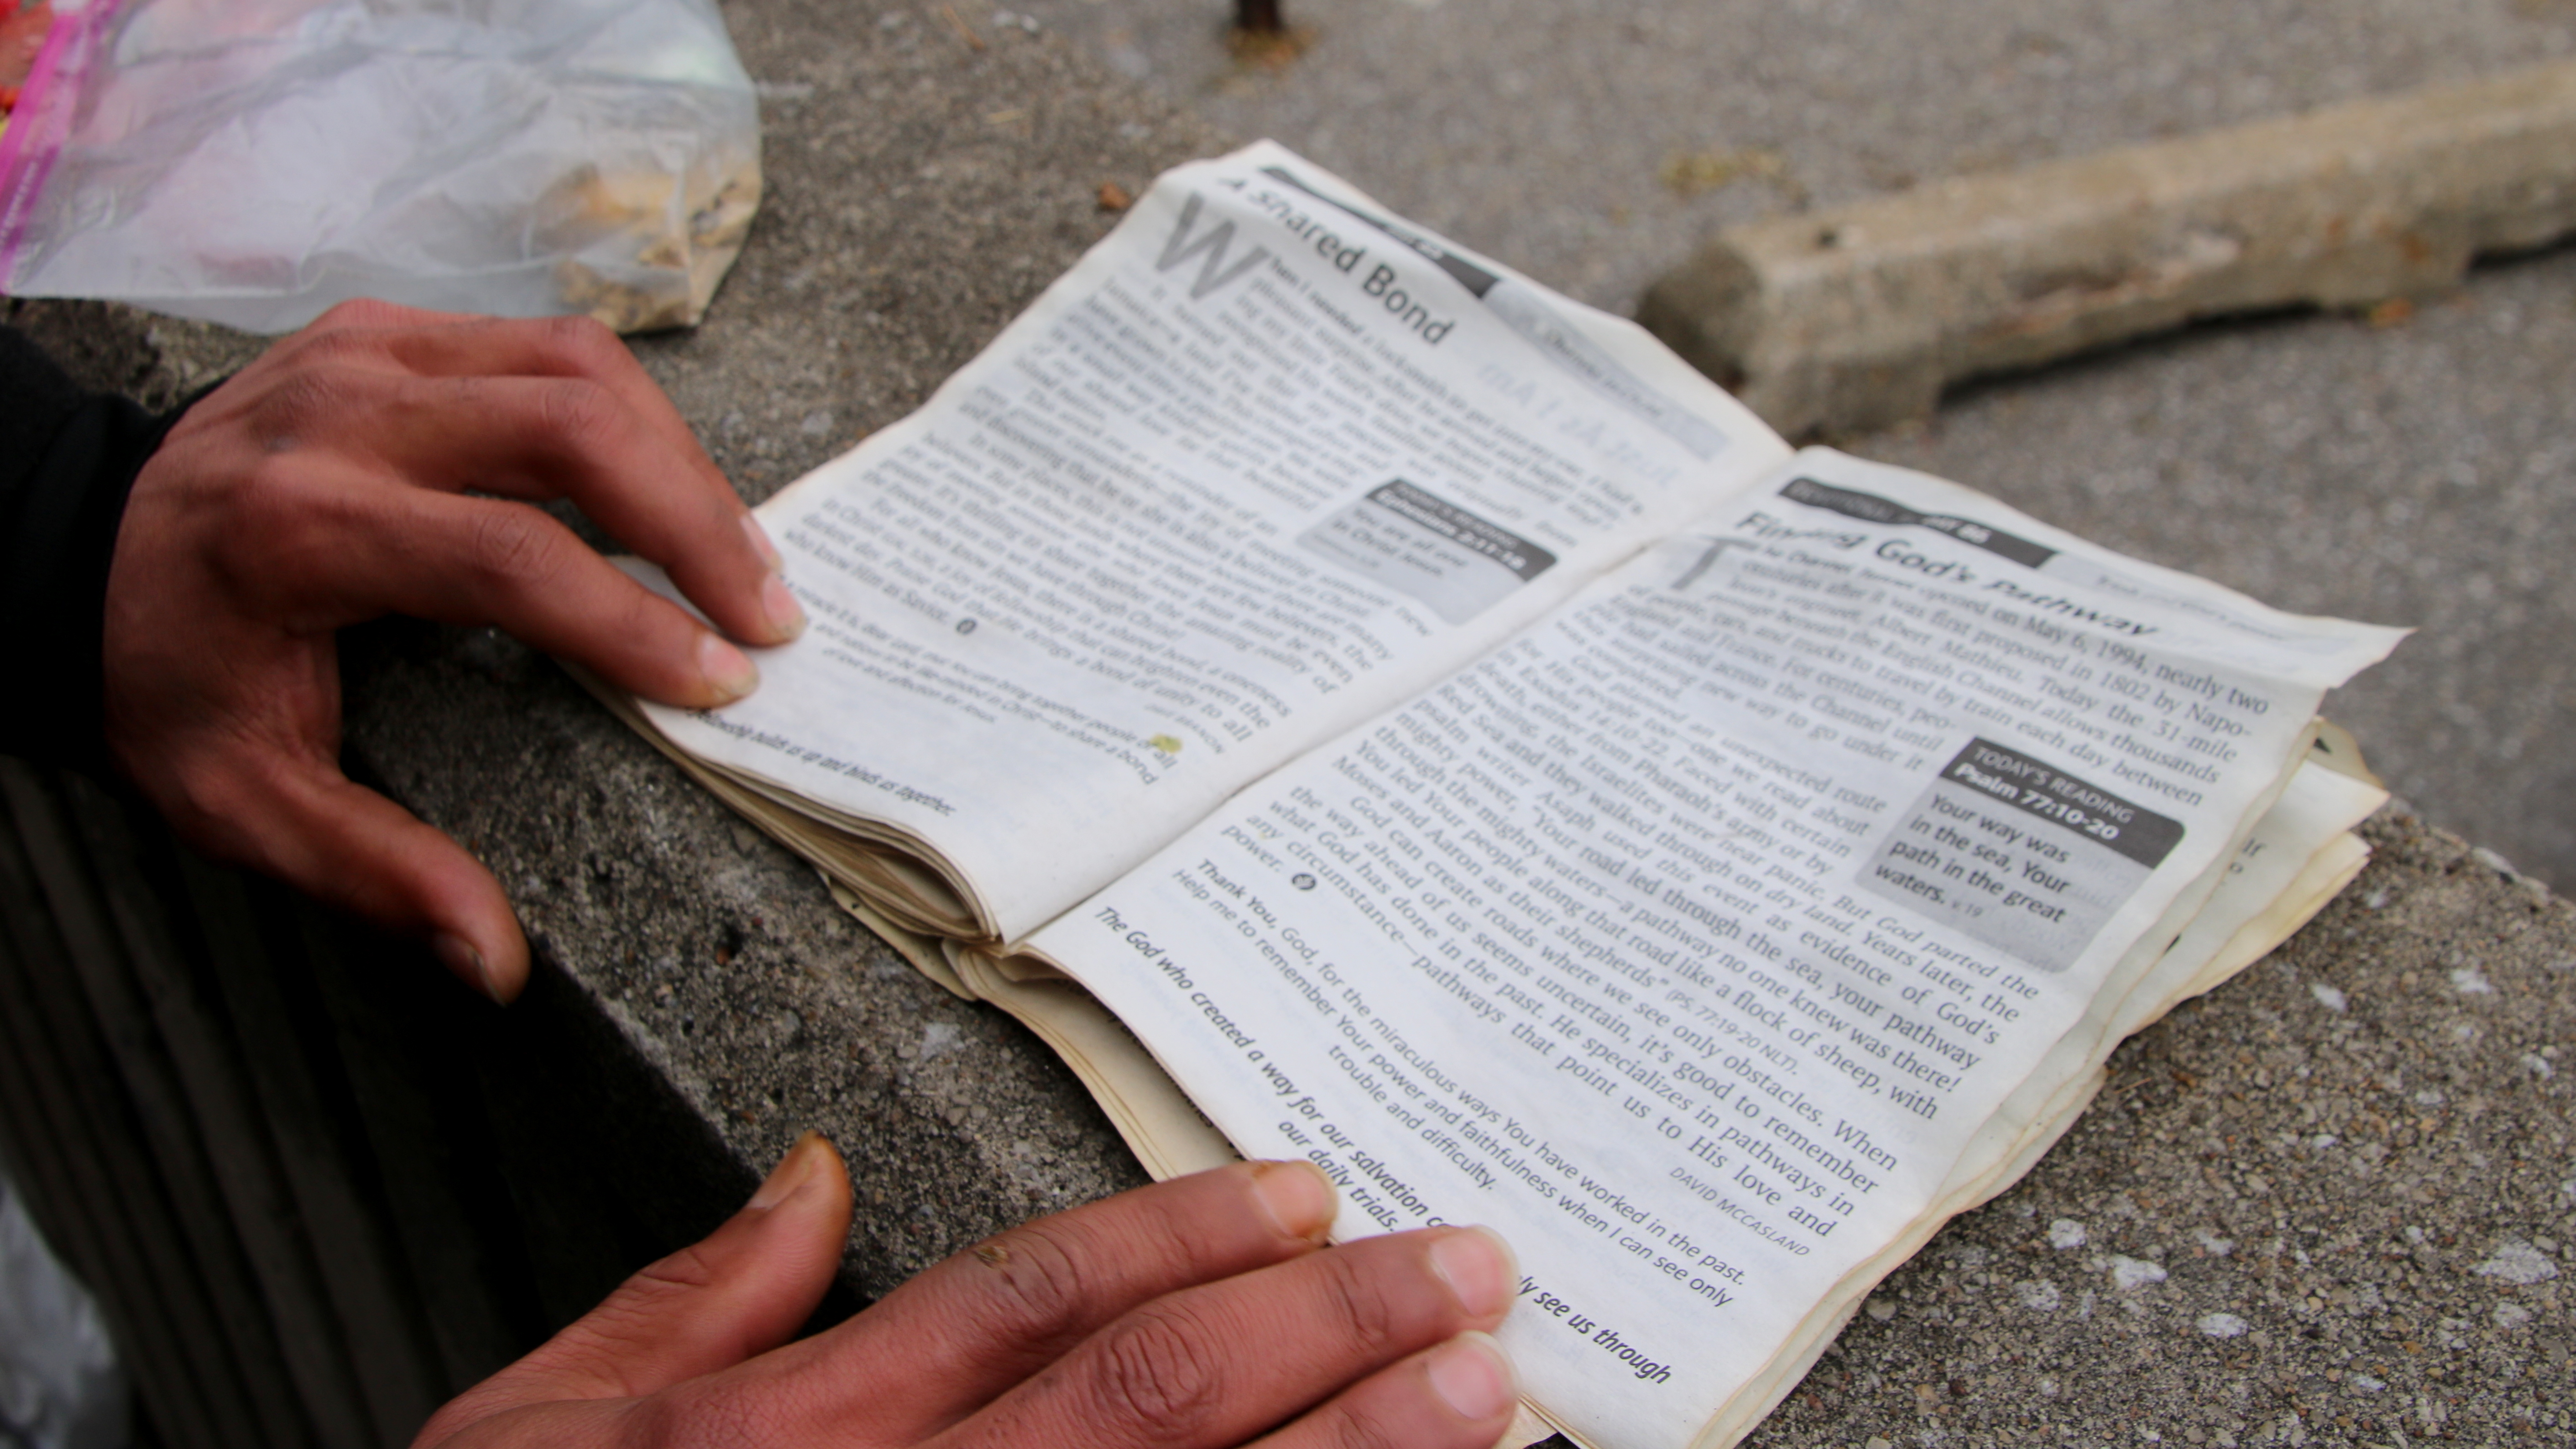 Namid Rawls uses a concrete ledge beside the city parking lot to hold his toothbrush, candles and religious reading material. (Fern Shen)